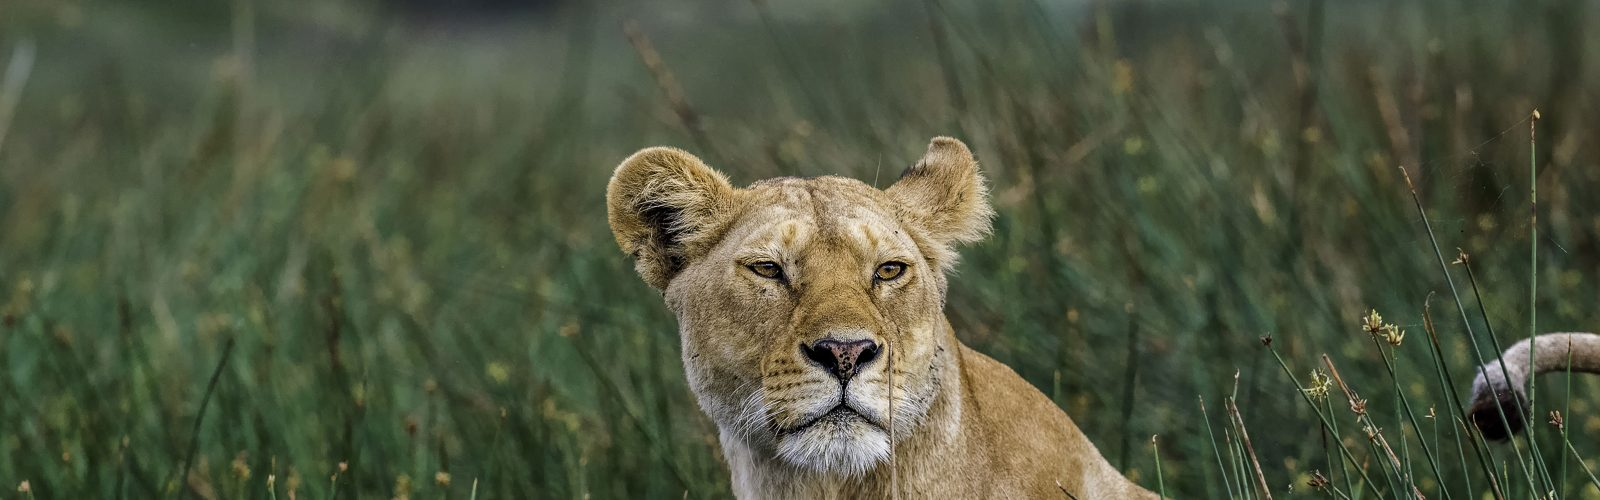 Cropped image of a lioness tail raised in grass